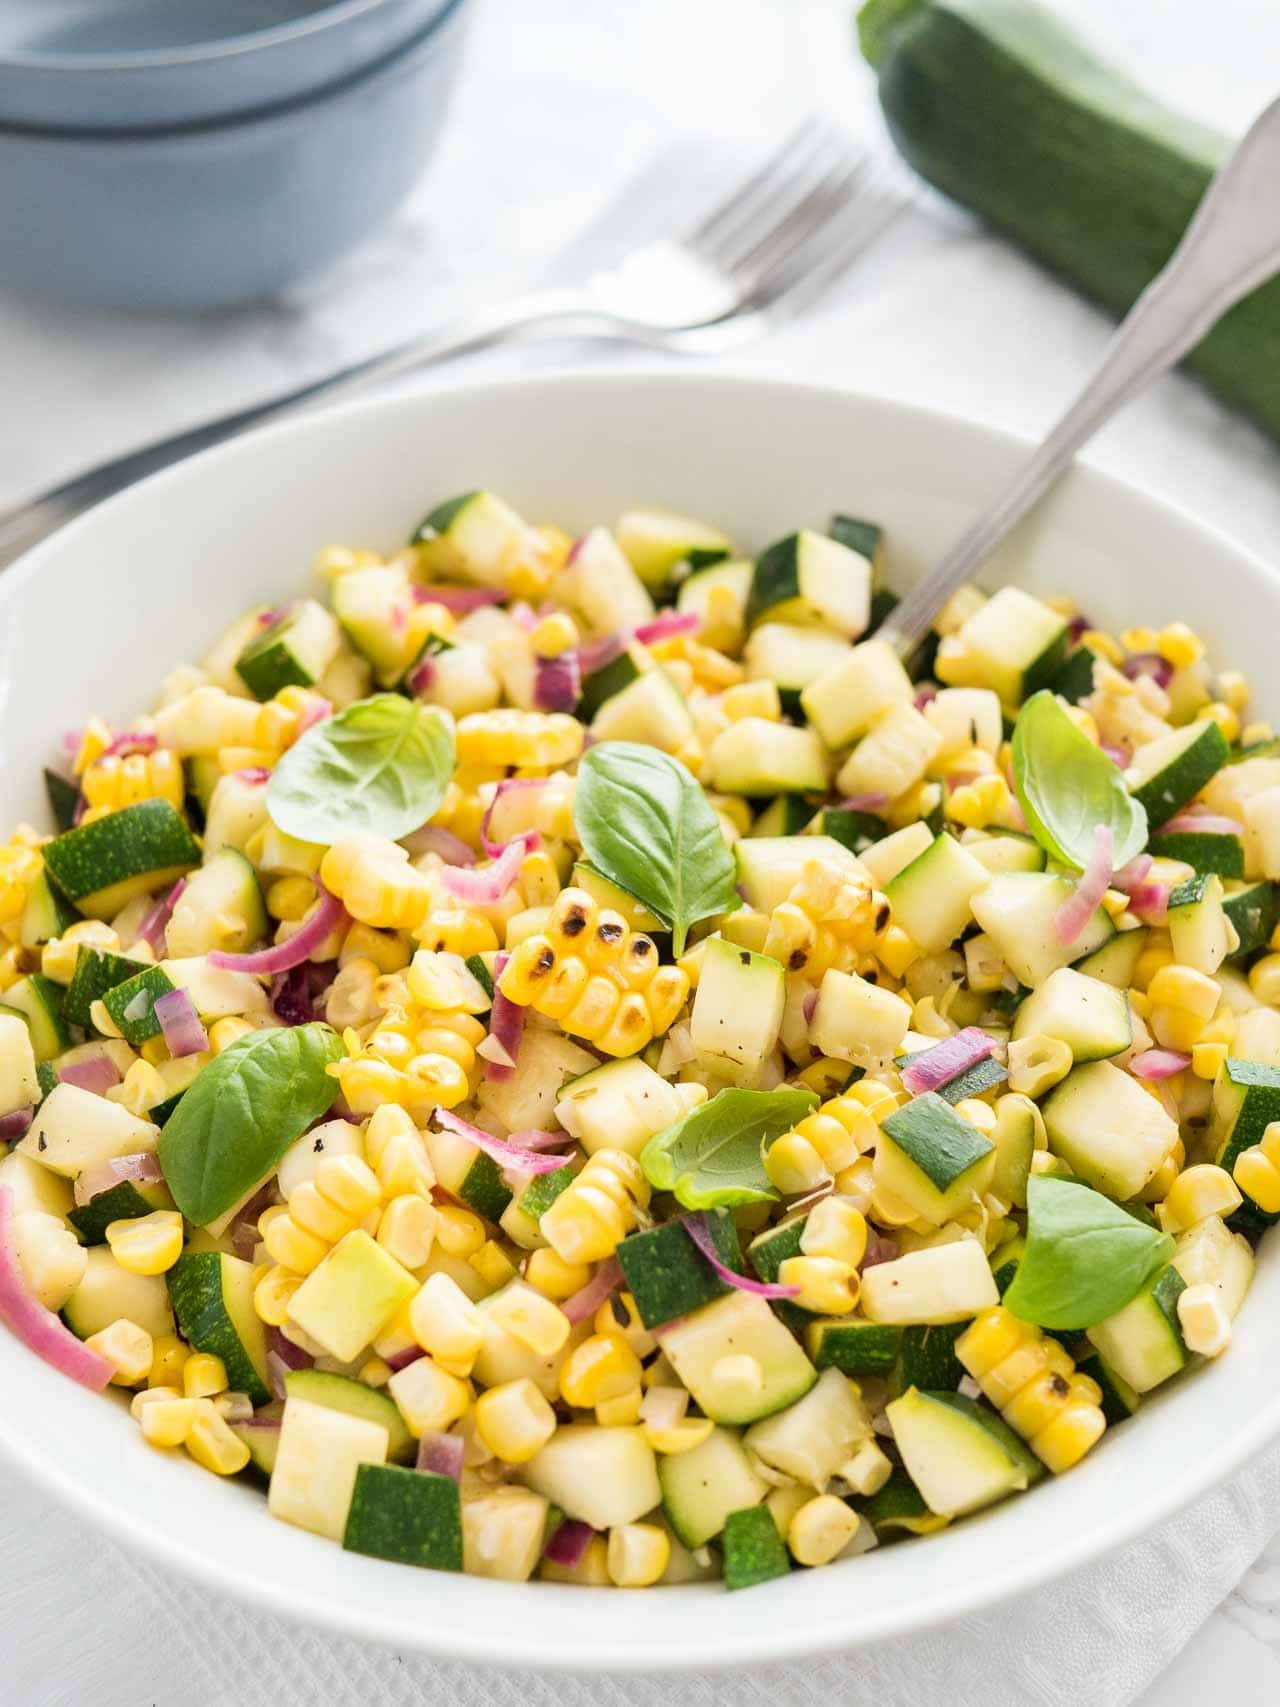 Roasted Corn Zucchini Salad from platedcravings.com on foodiecrush.com